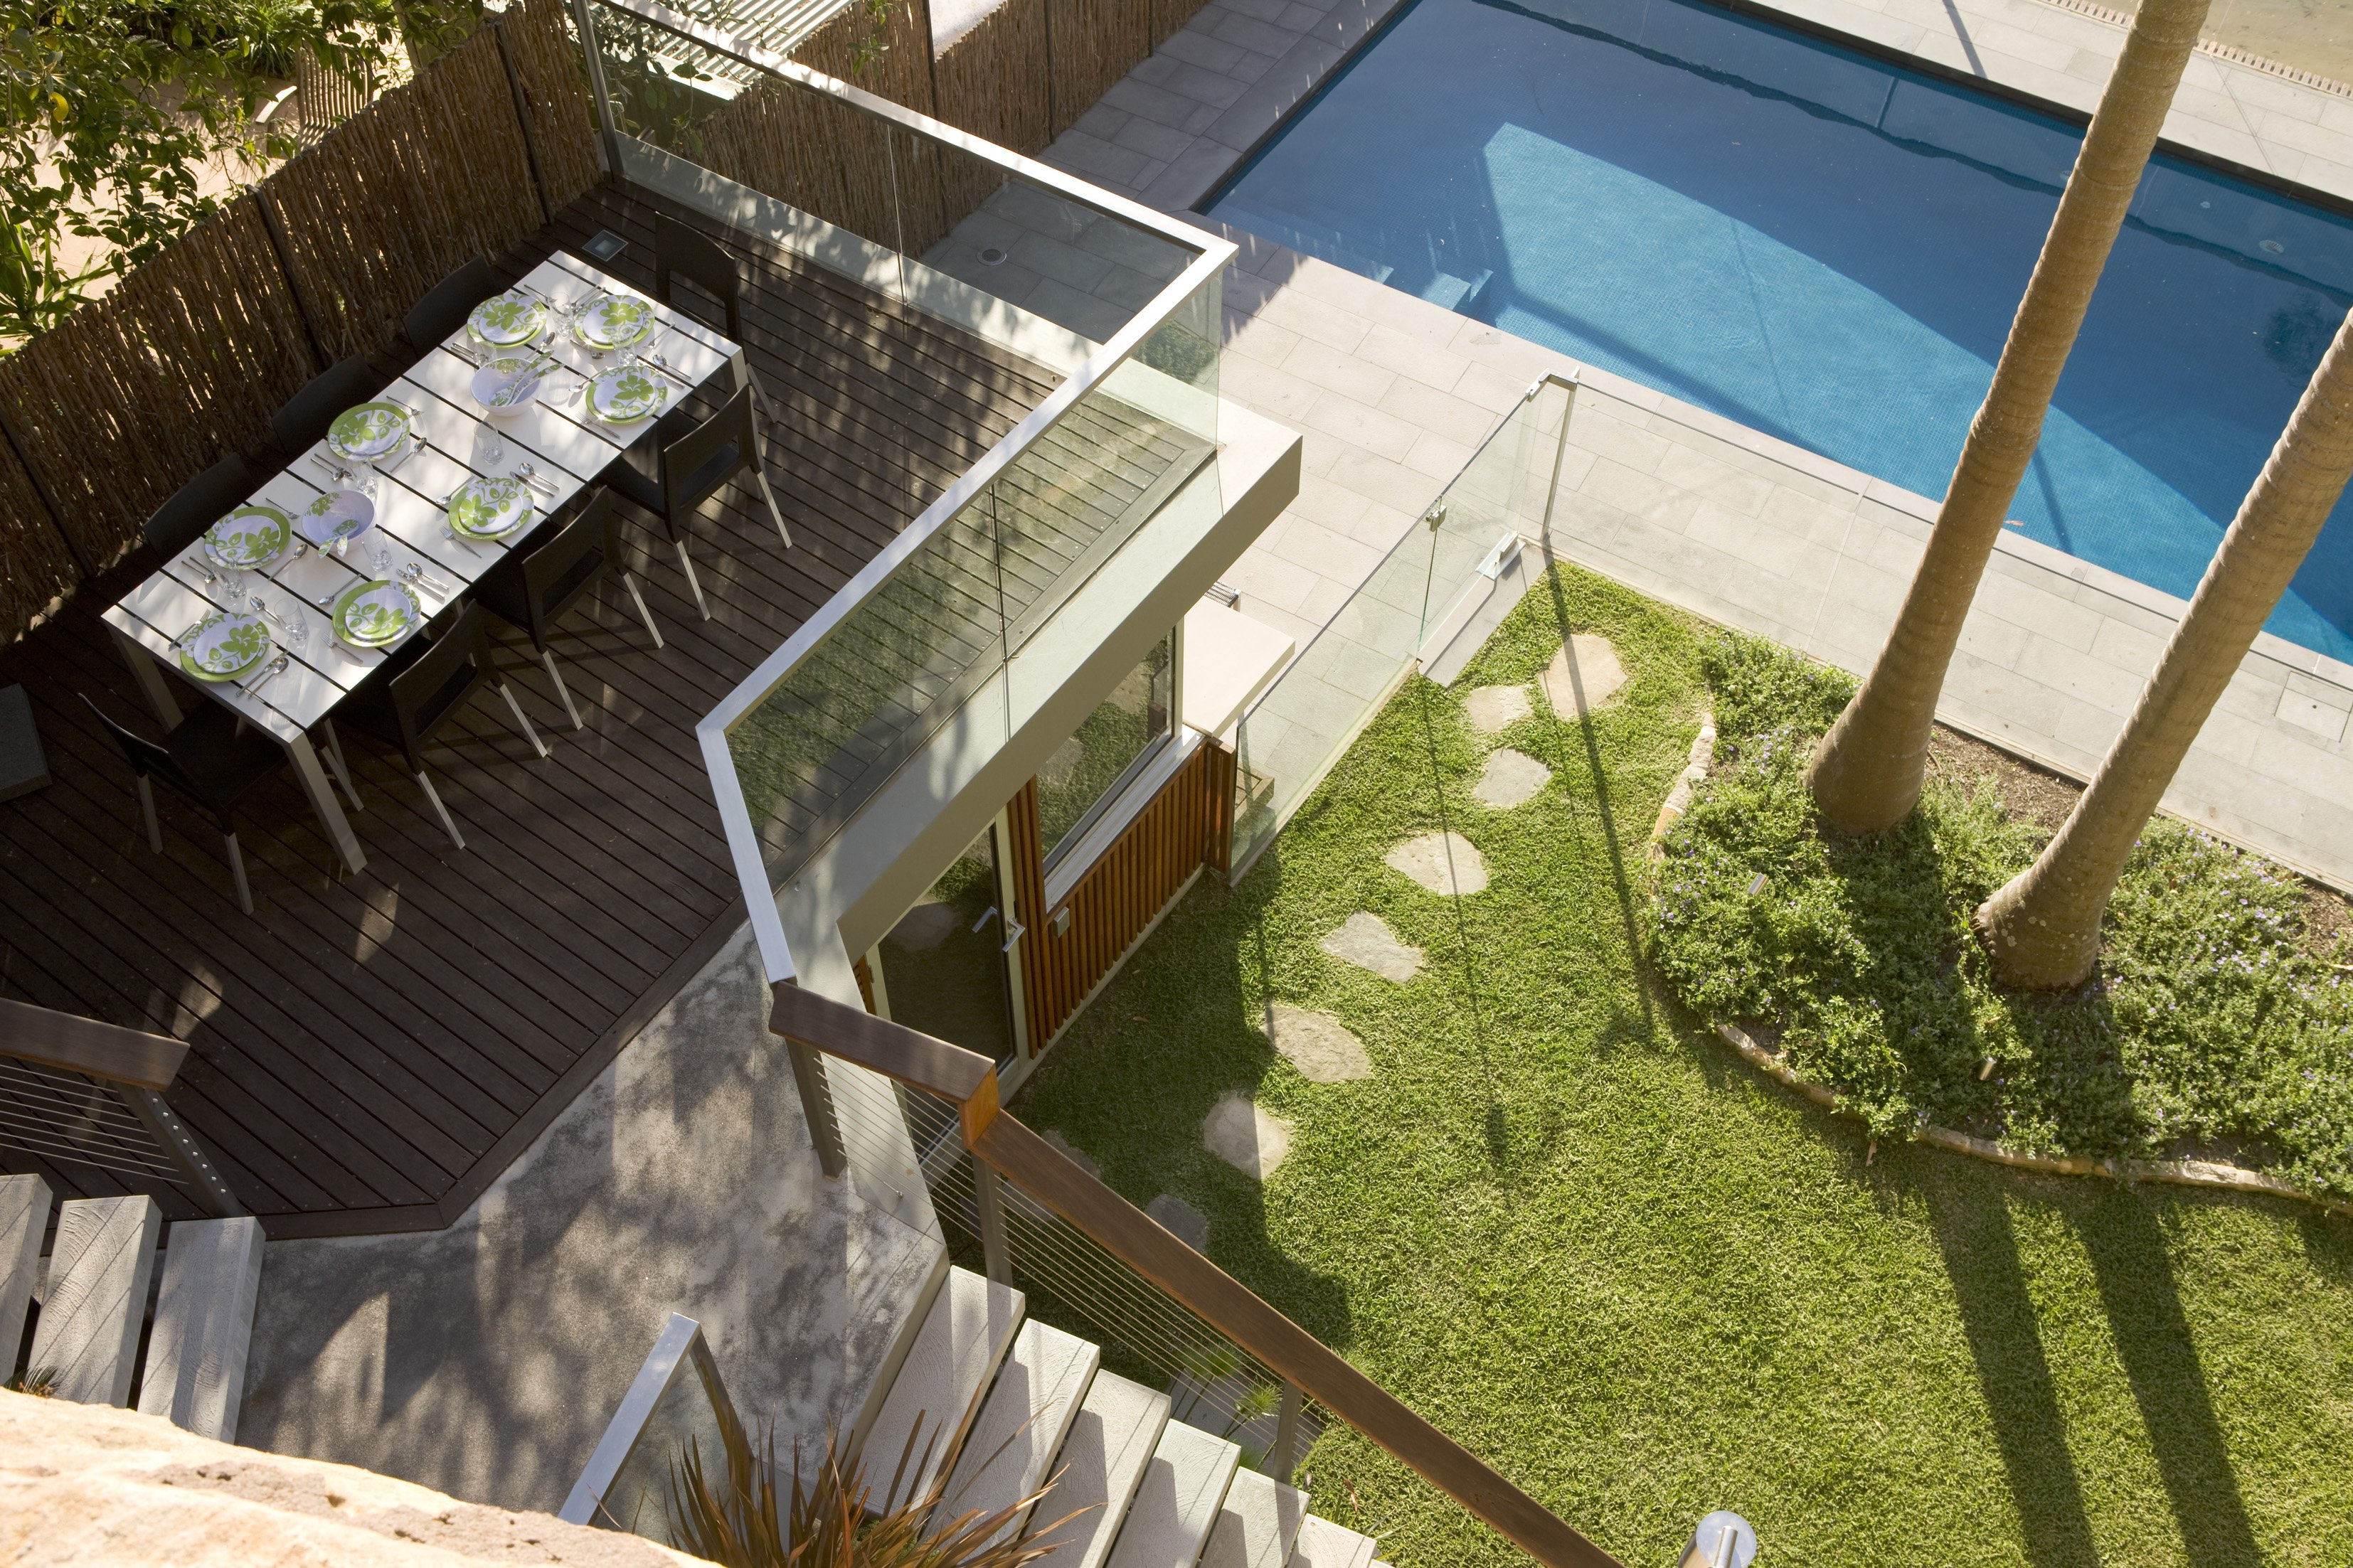 A timber deck with a dining table, onlooking a pool area